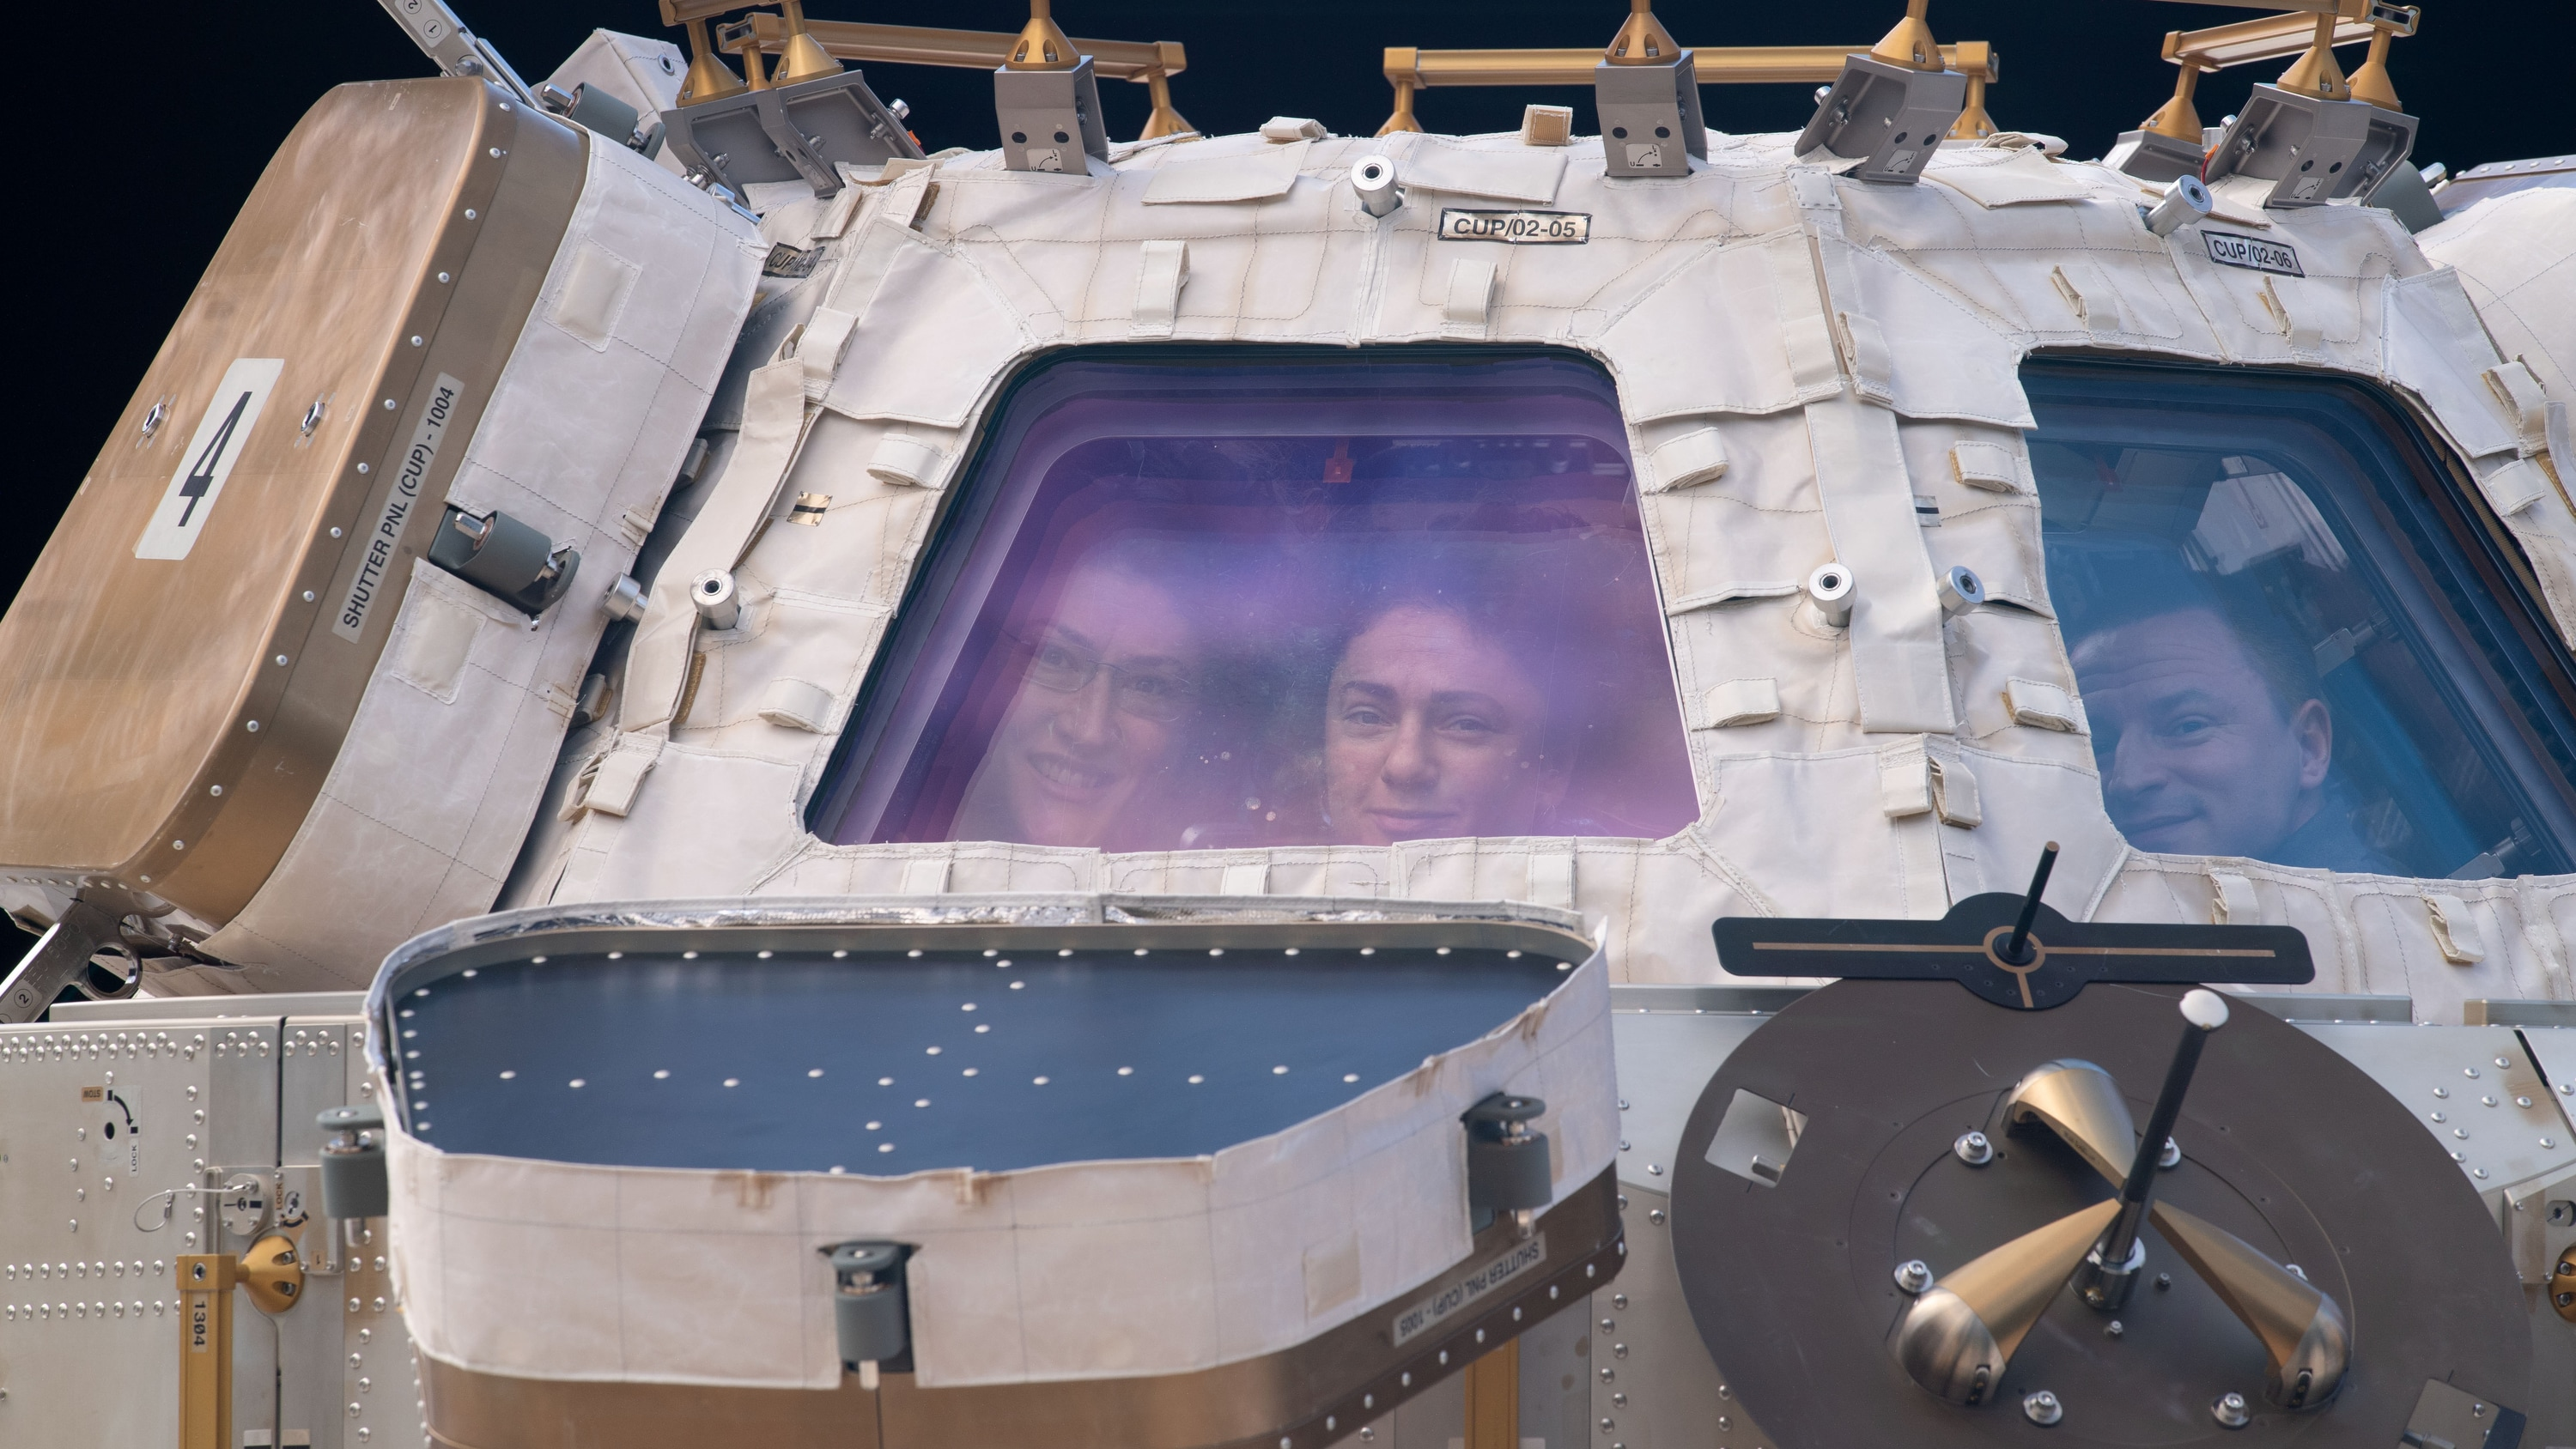 """AMONG THE STARS - (Nov. 4, 2019) - NASA astronauts (from left) Christina Koch, Jessica Meir and Andrew Morgan peer through the International Space Station's """"window to the world,"""" the cupola. The trio were on robotics duty monitoring the arrival and capture of the Cygnus space freighter from Northrop Grumman. (NASA) CHRISTINA KOCH, JESSICA MEIR, ANDREW MORGAN"""